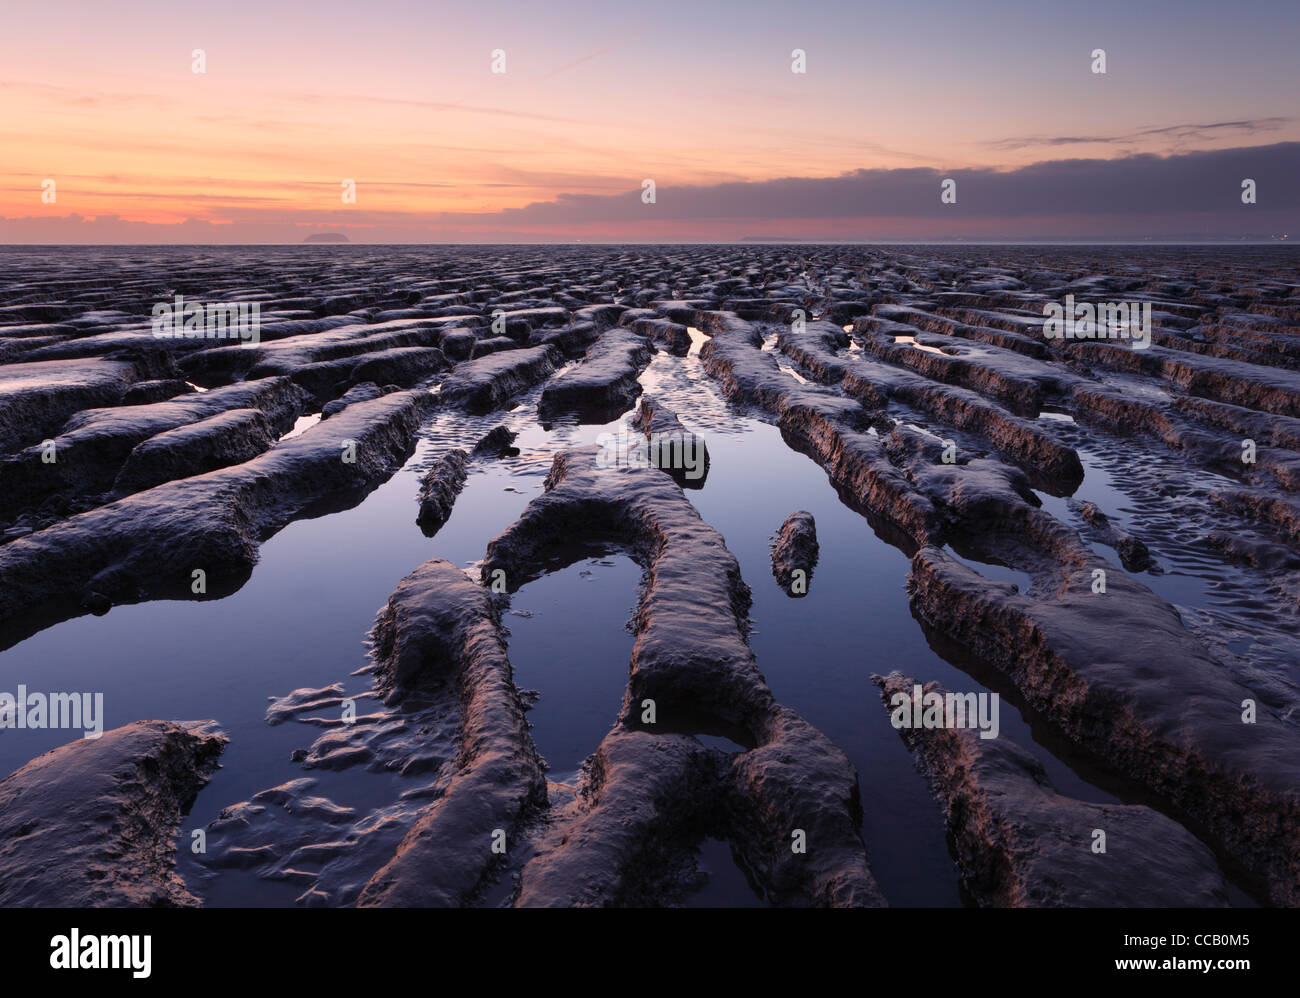 Mudflats at Sand Bay, Weston-super-Mare. Somerset. England. UK. - Stock Image